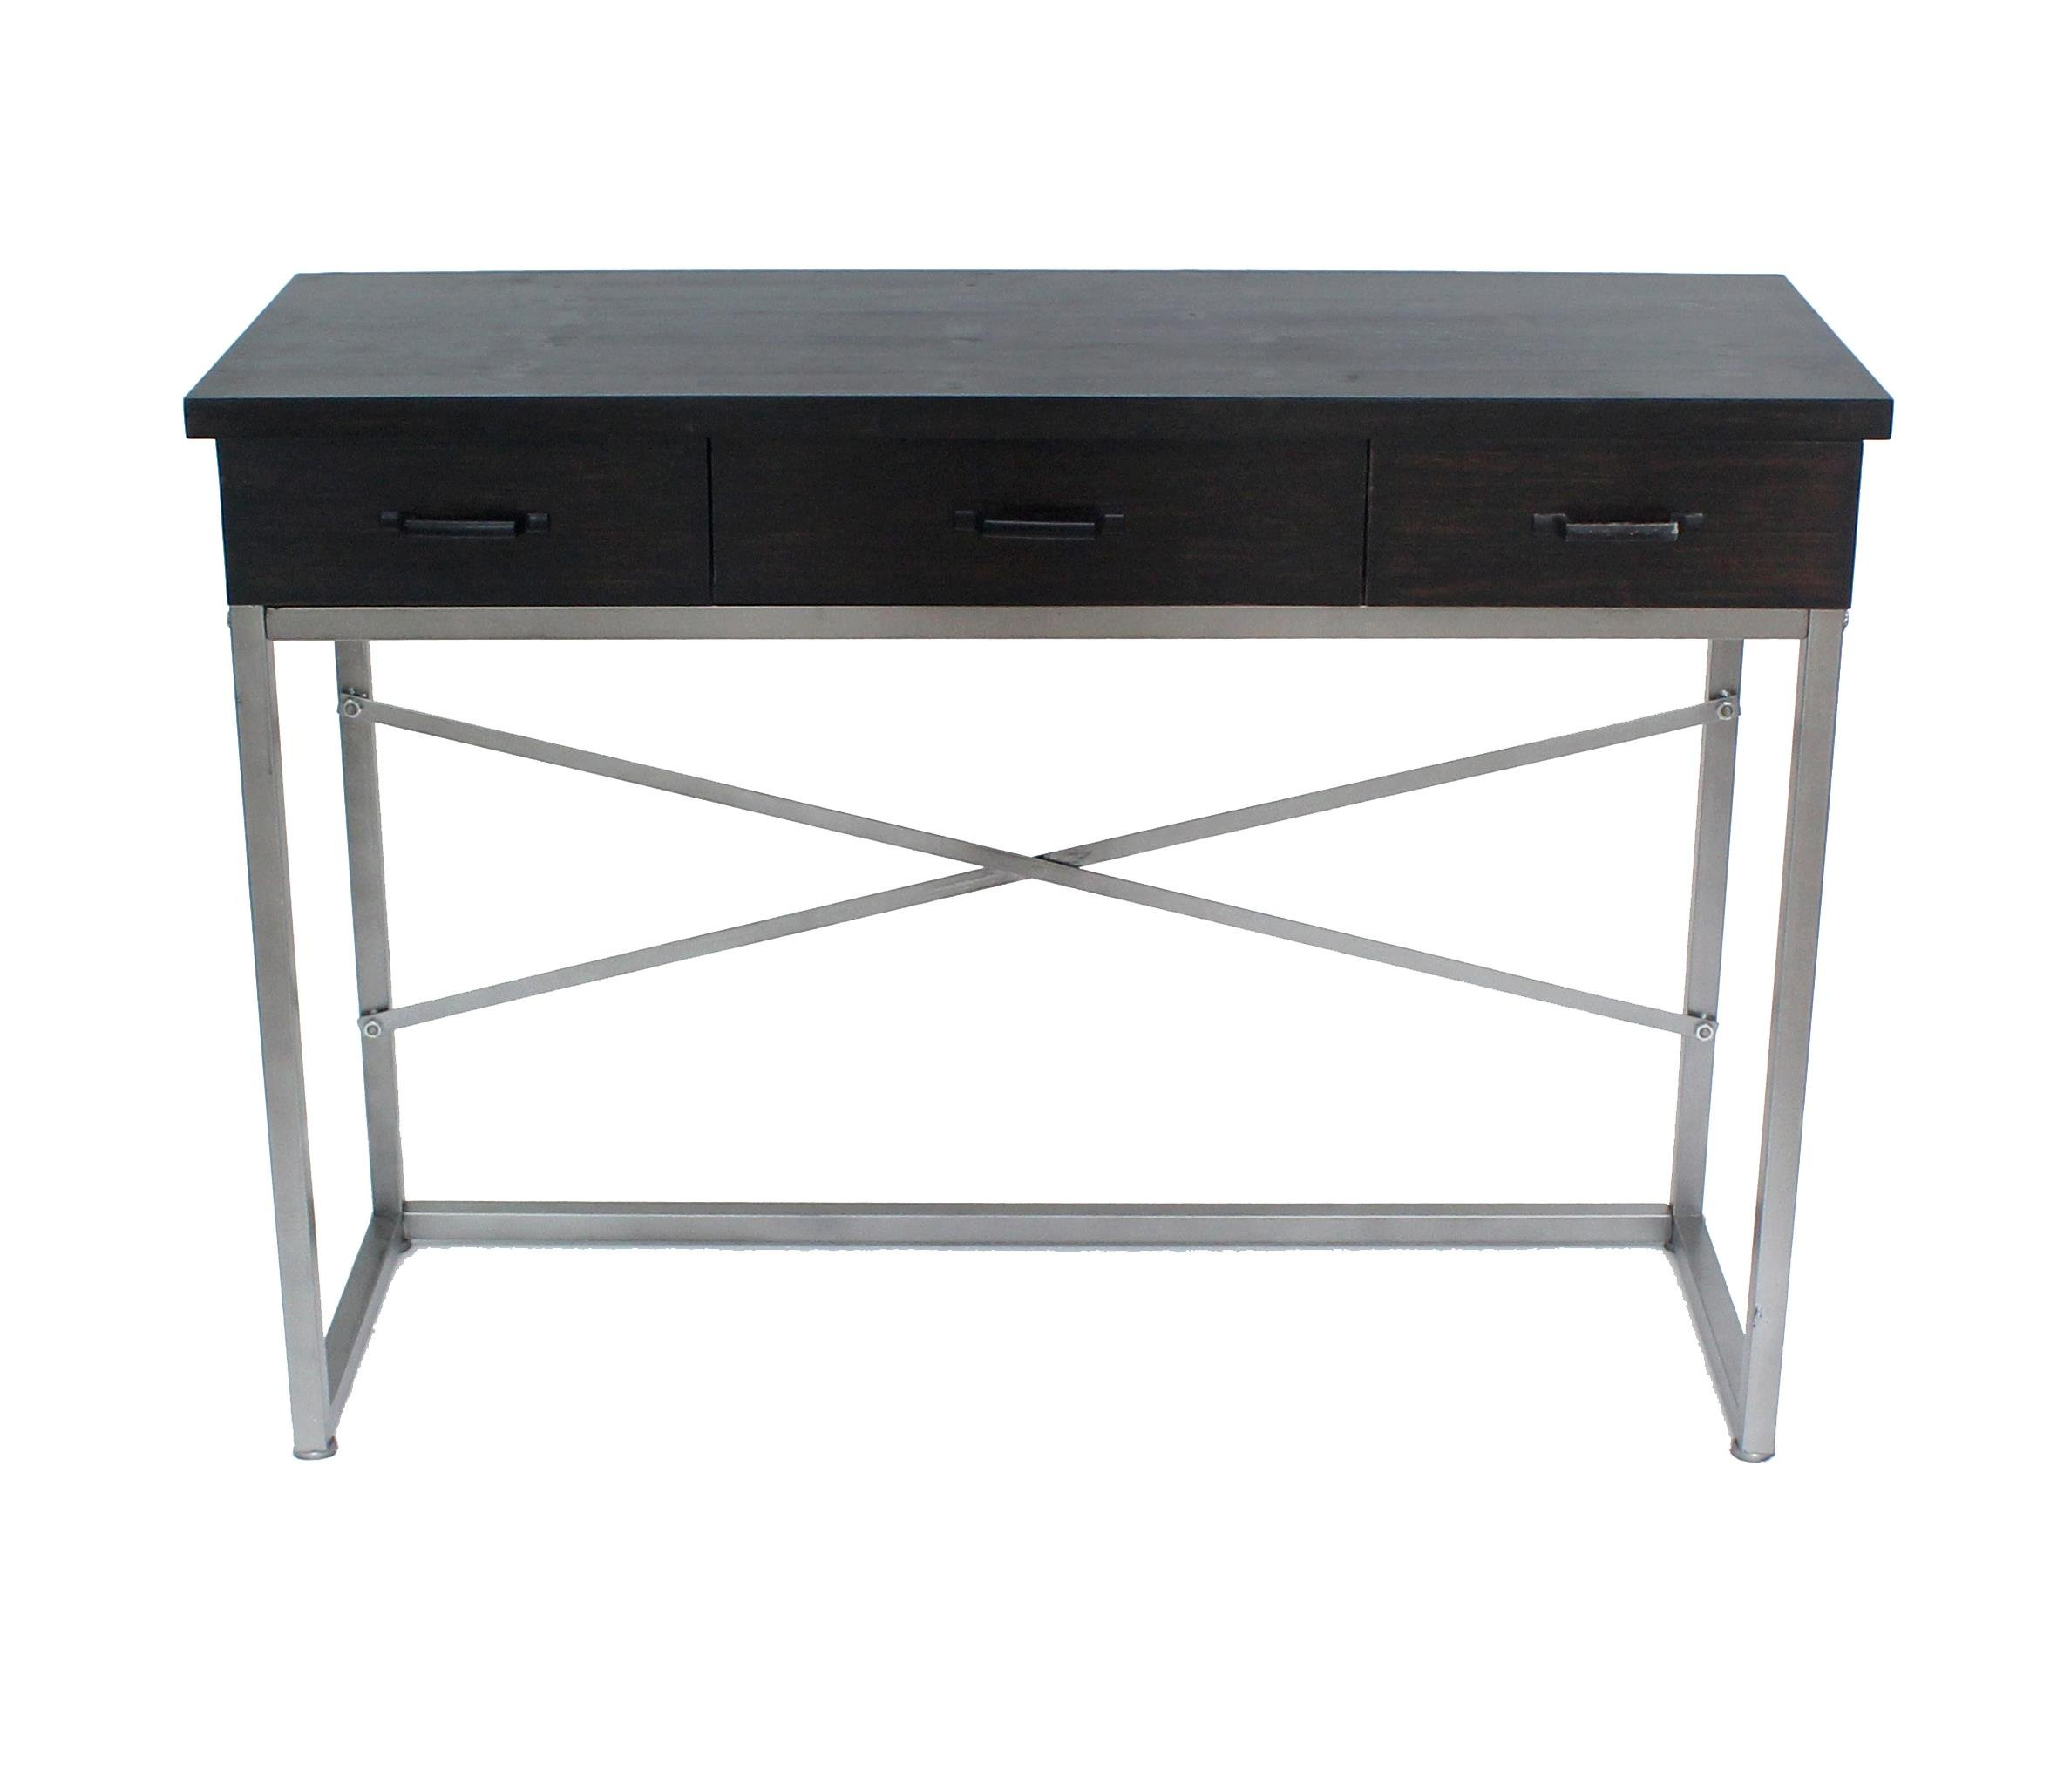 Teton Home 3 Drawer Console Table - AF-112